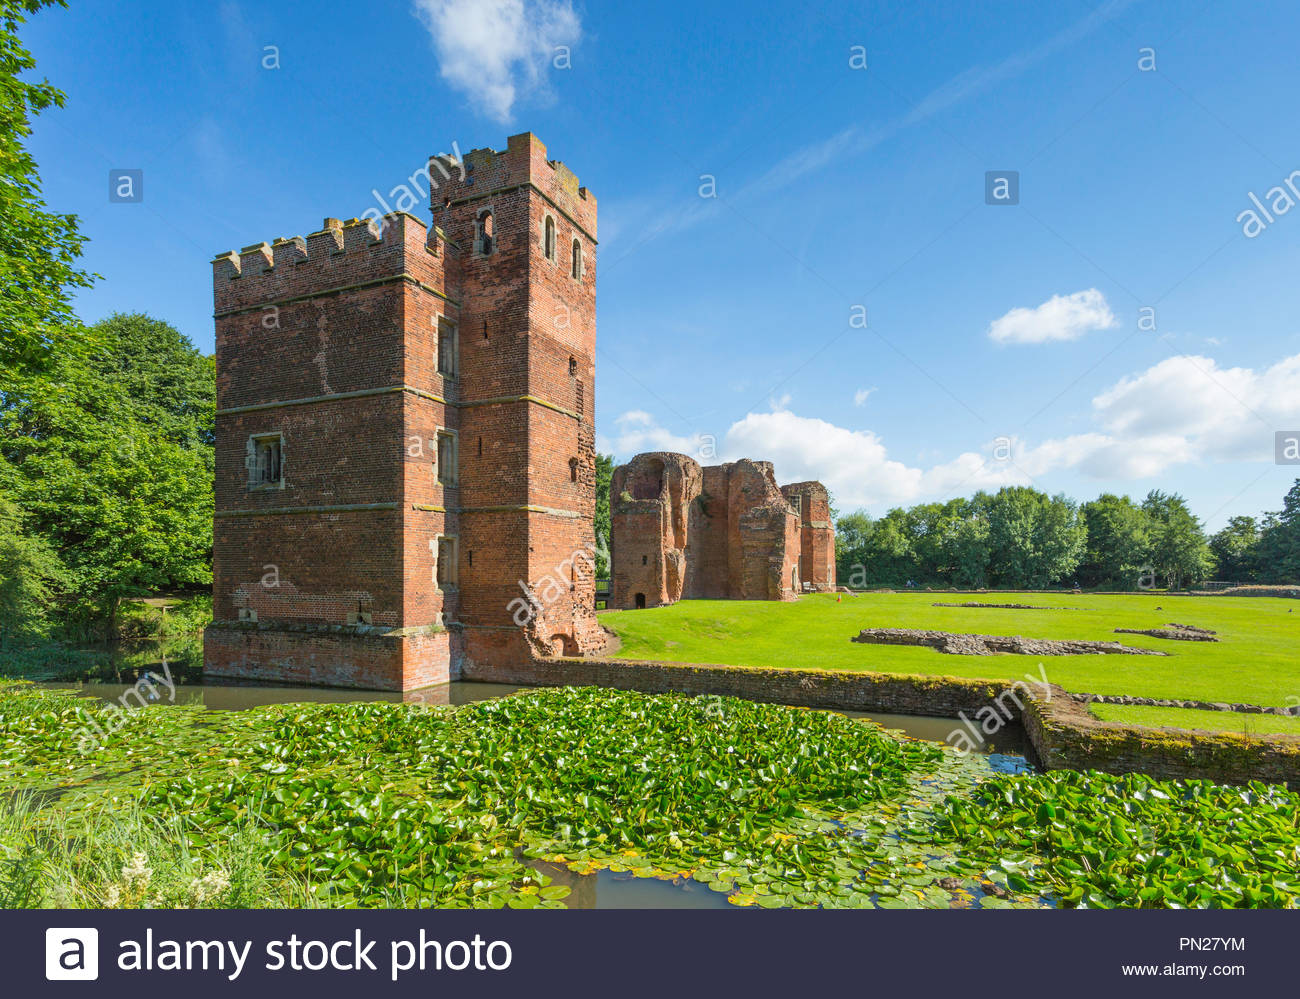 Kirby Muxloe Castle, a picturesque fortified mansion, was built for Lord Hastings who was dramatically seized and executed by Richard III in 1483. - Stock Image